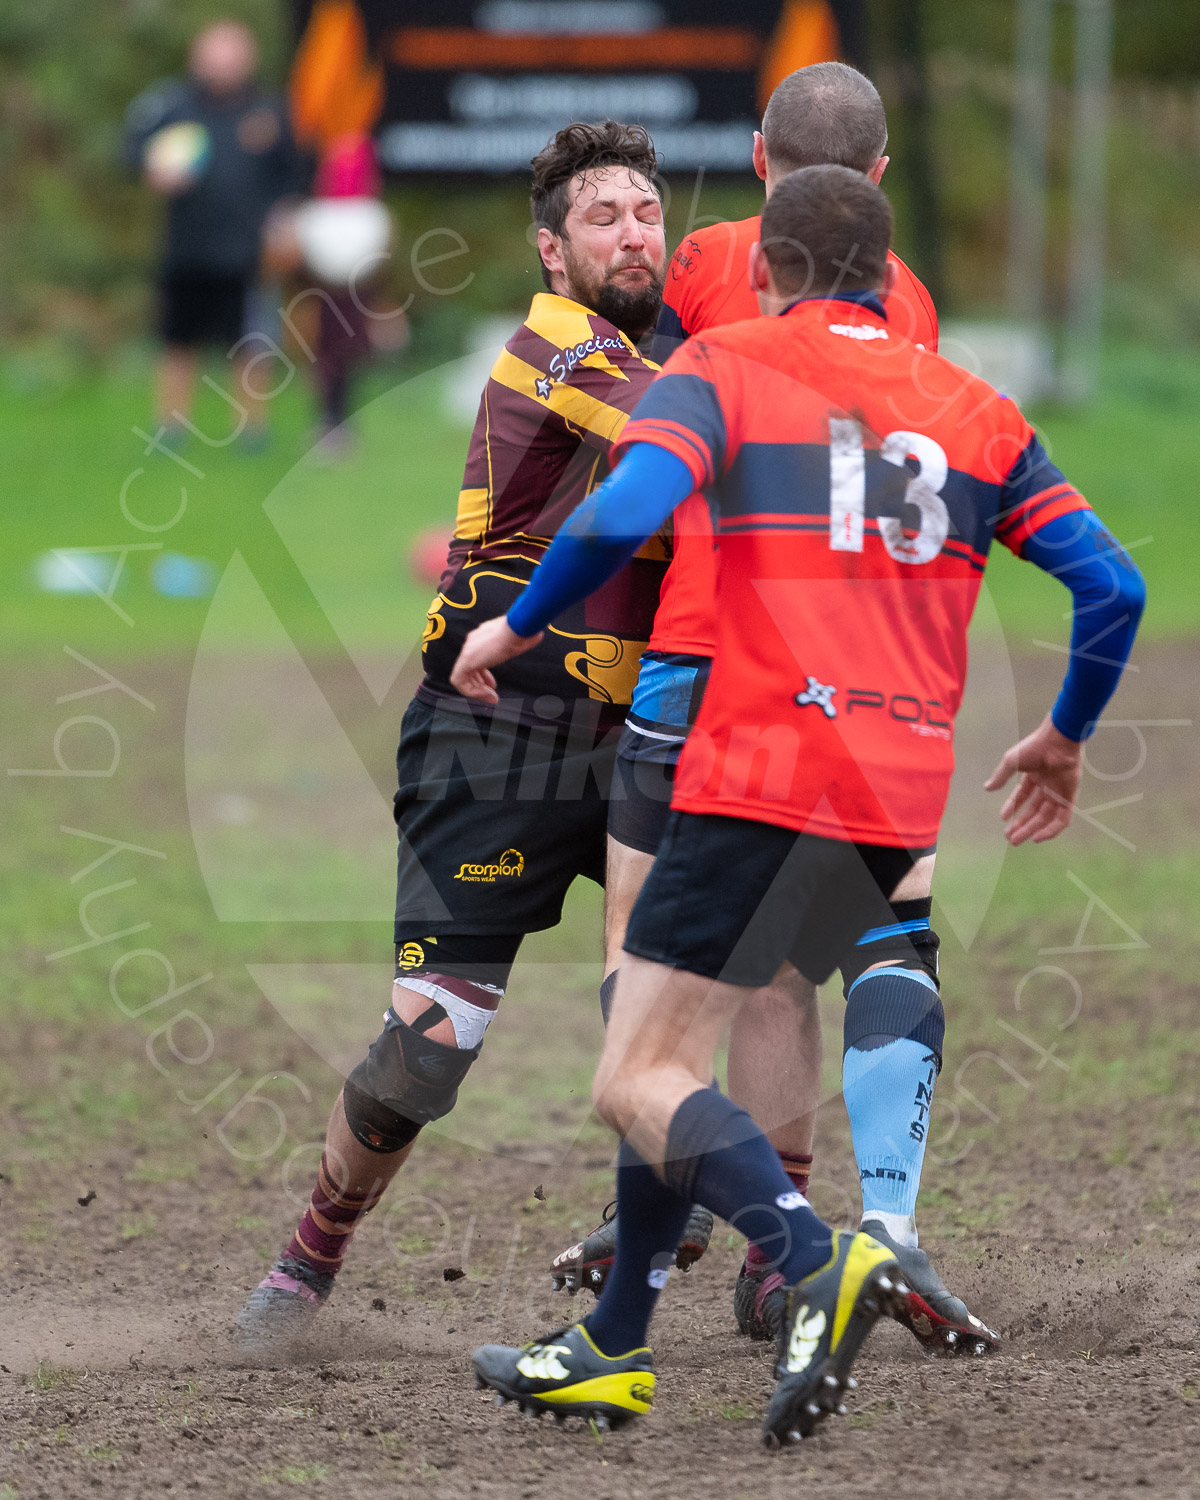 20181027 Amp Extras vs St Neots 2nd XV #2166